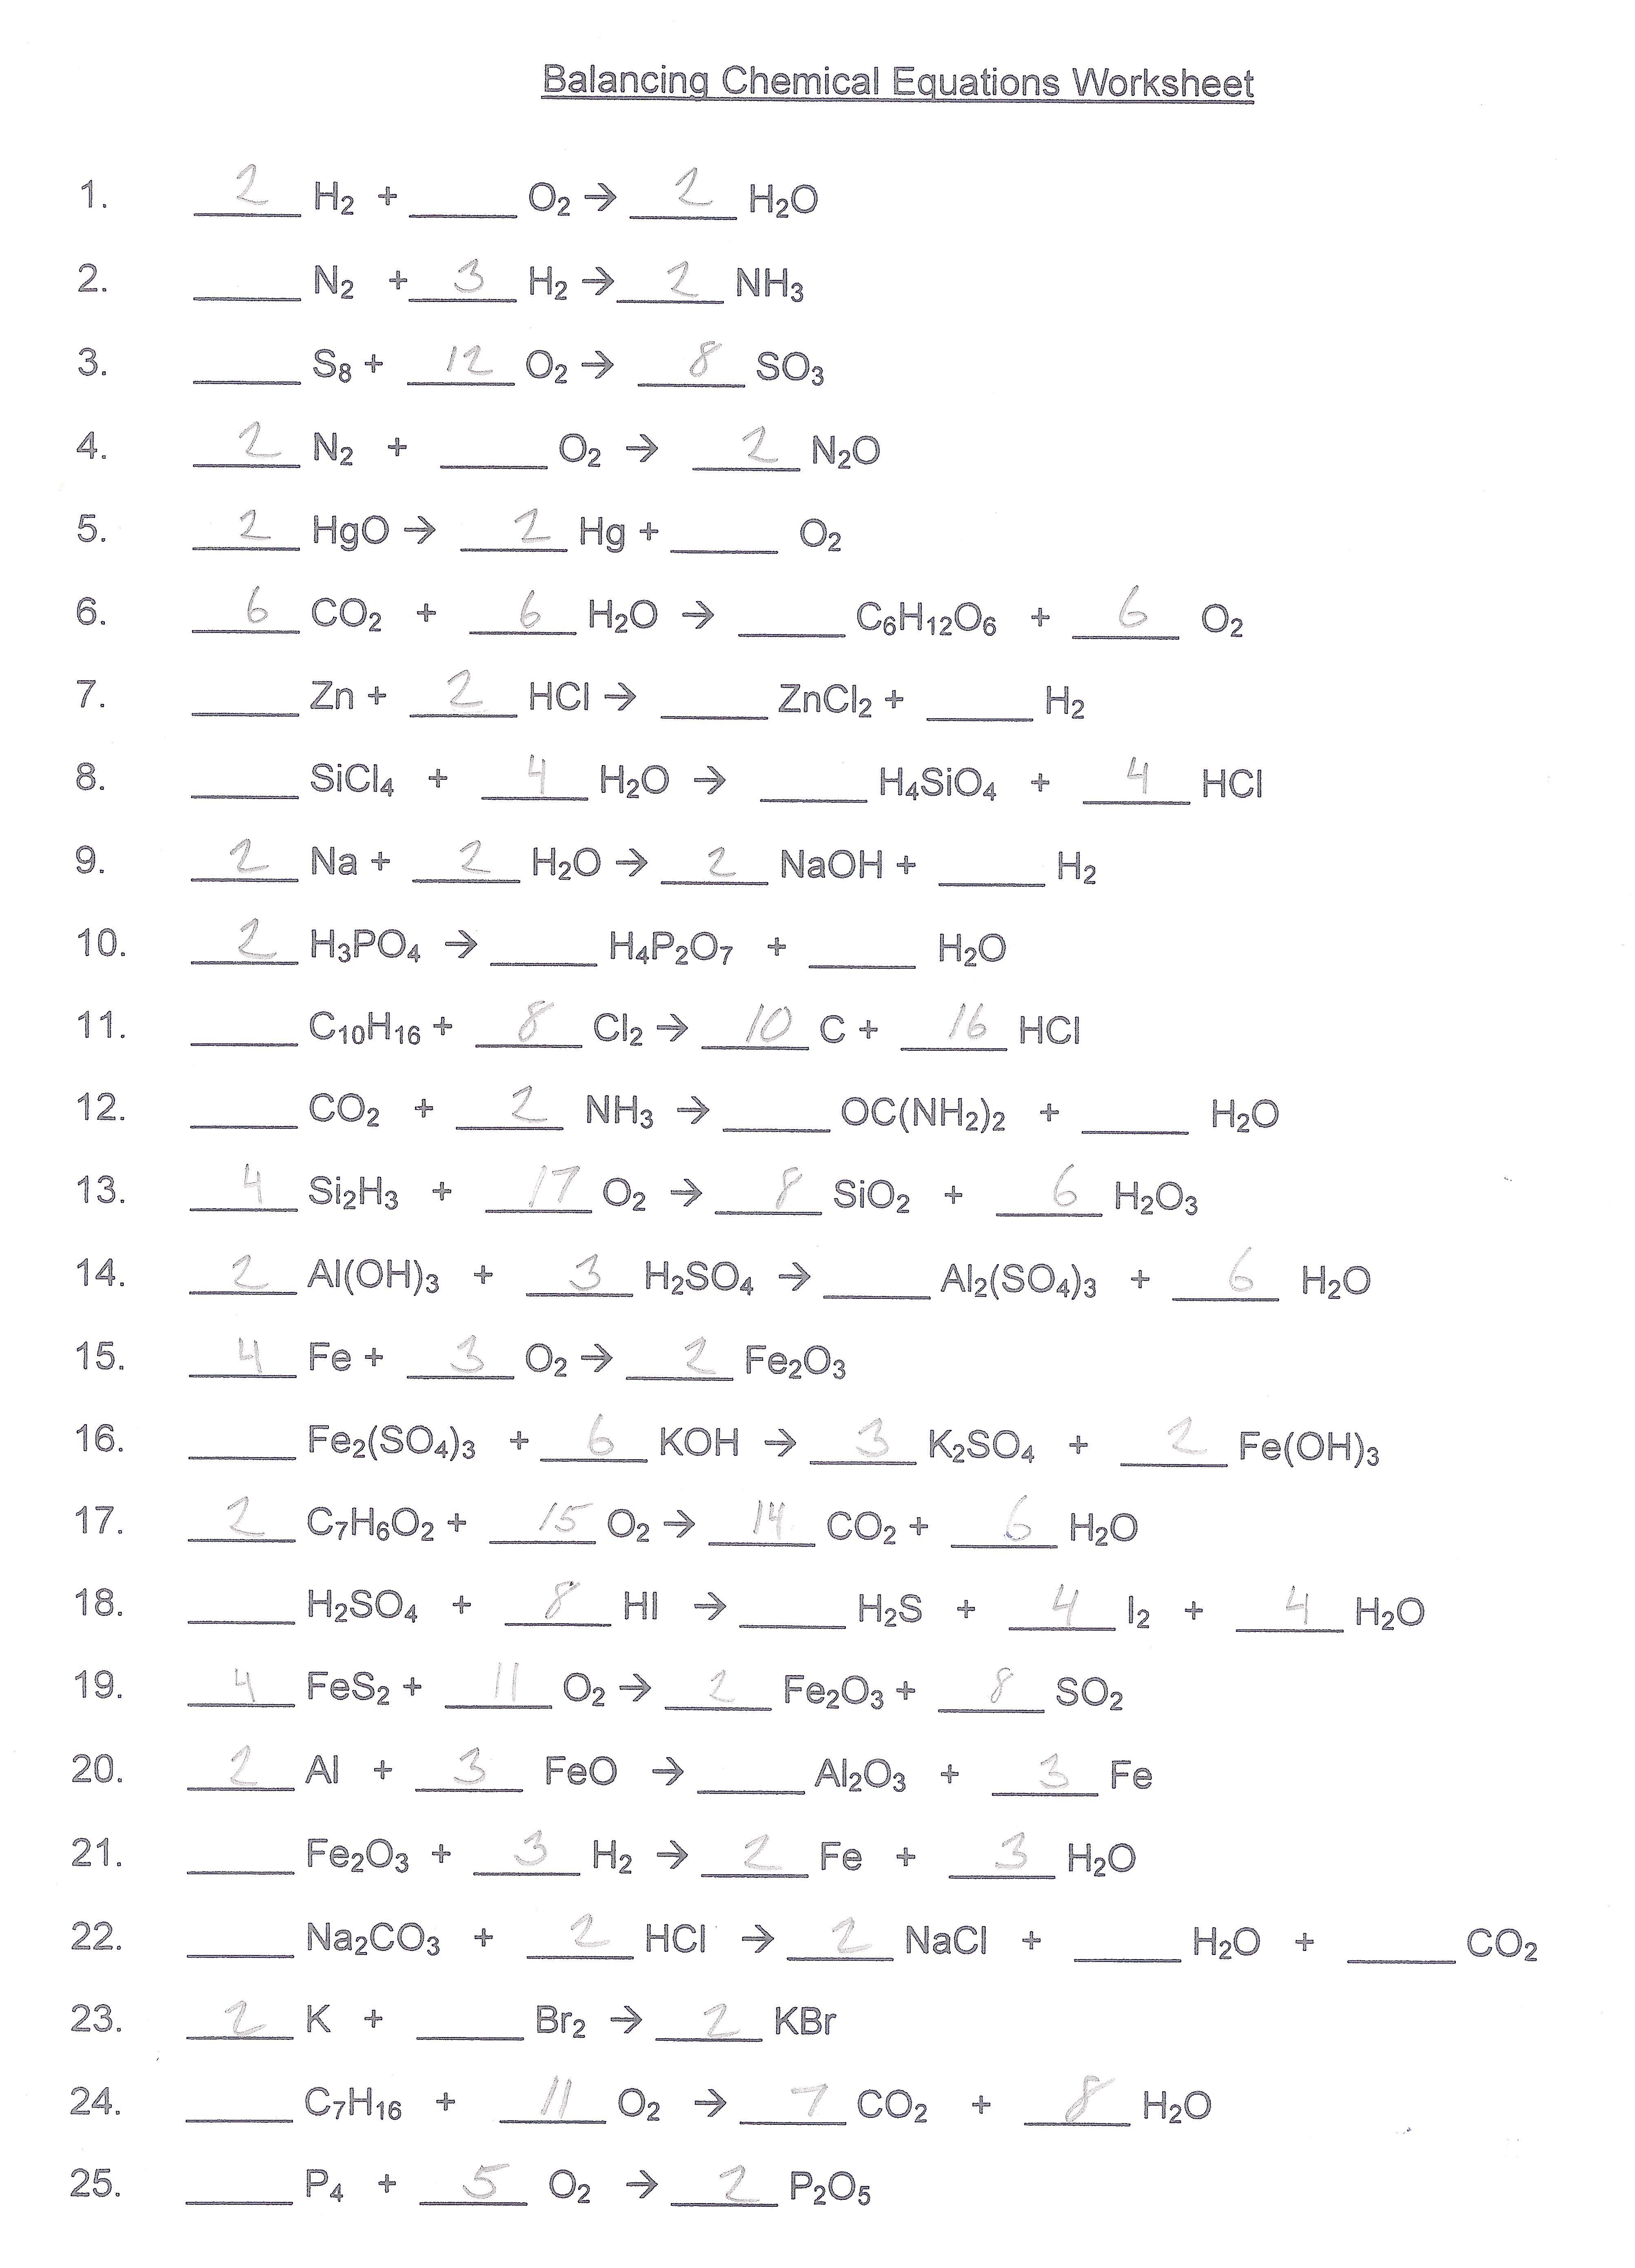 Balancing Chemical Equations Worksheet Answer Key – Balancing Chemical Equations Worksheet 1 Answers